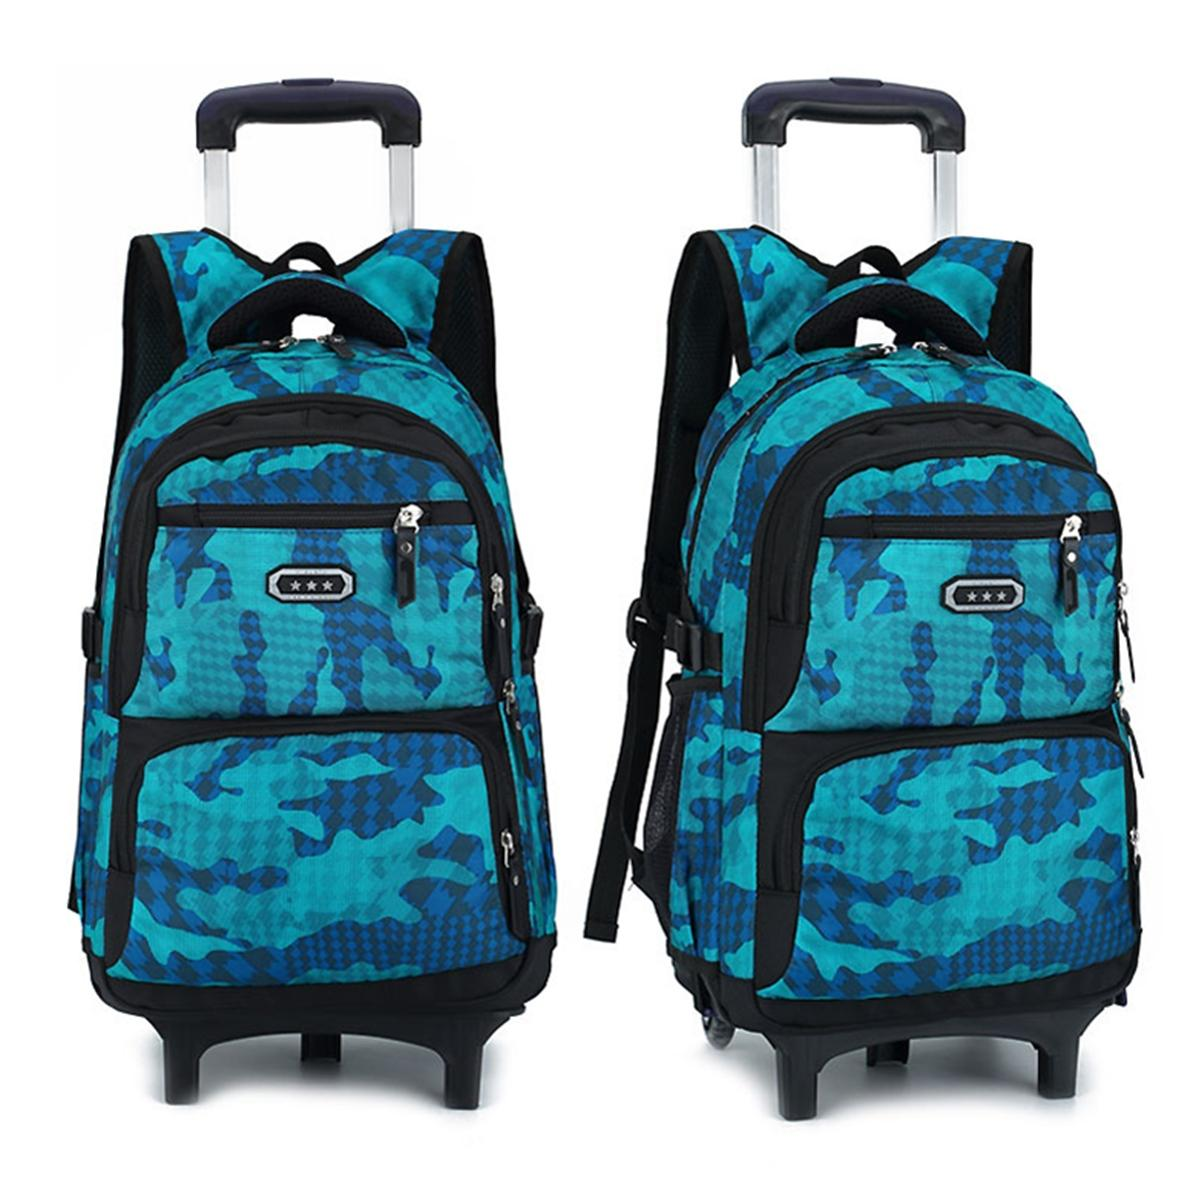 8f634efc88b5e Product details of Teenager Wheels Trolley Luggage Backpack Travel Rucksack  Pack Student School Bag  2 wheel